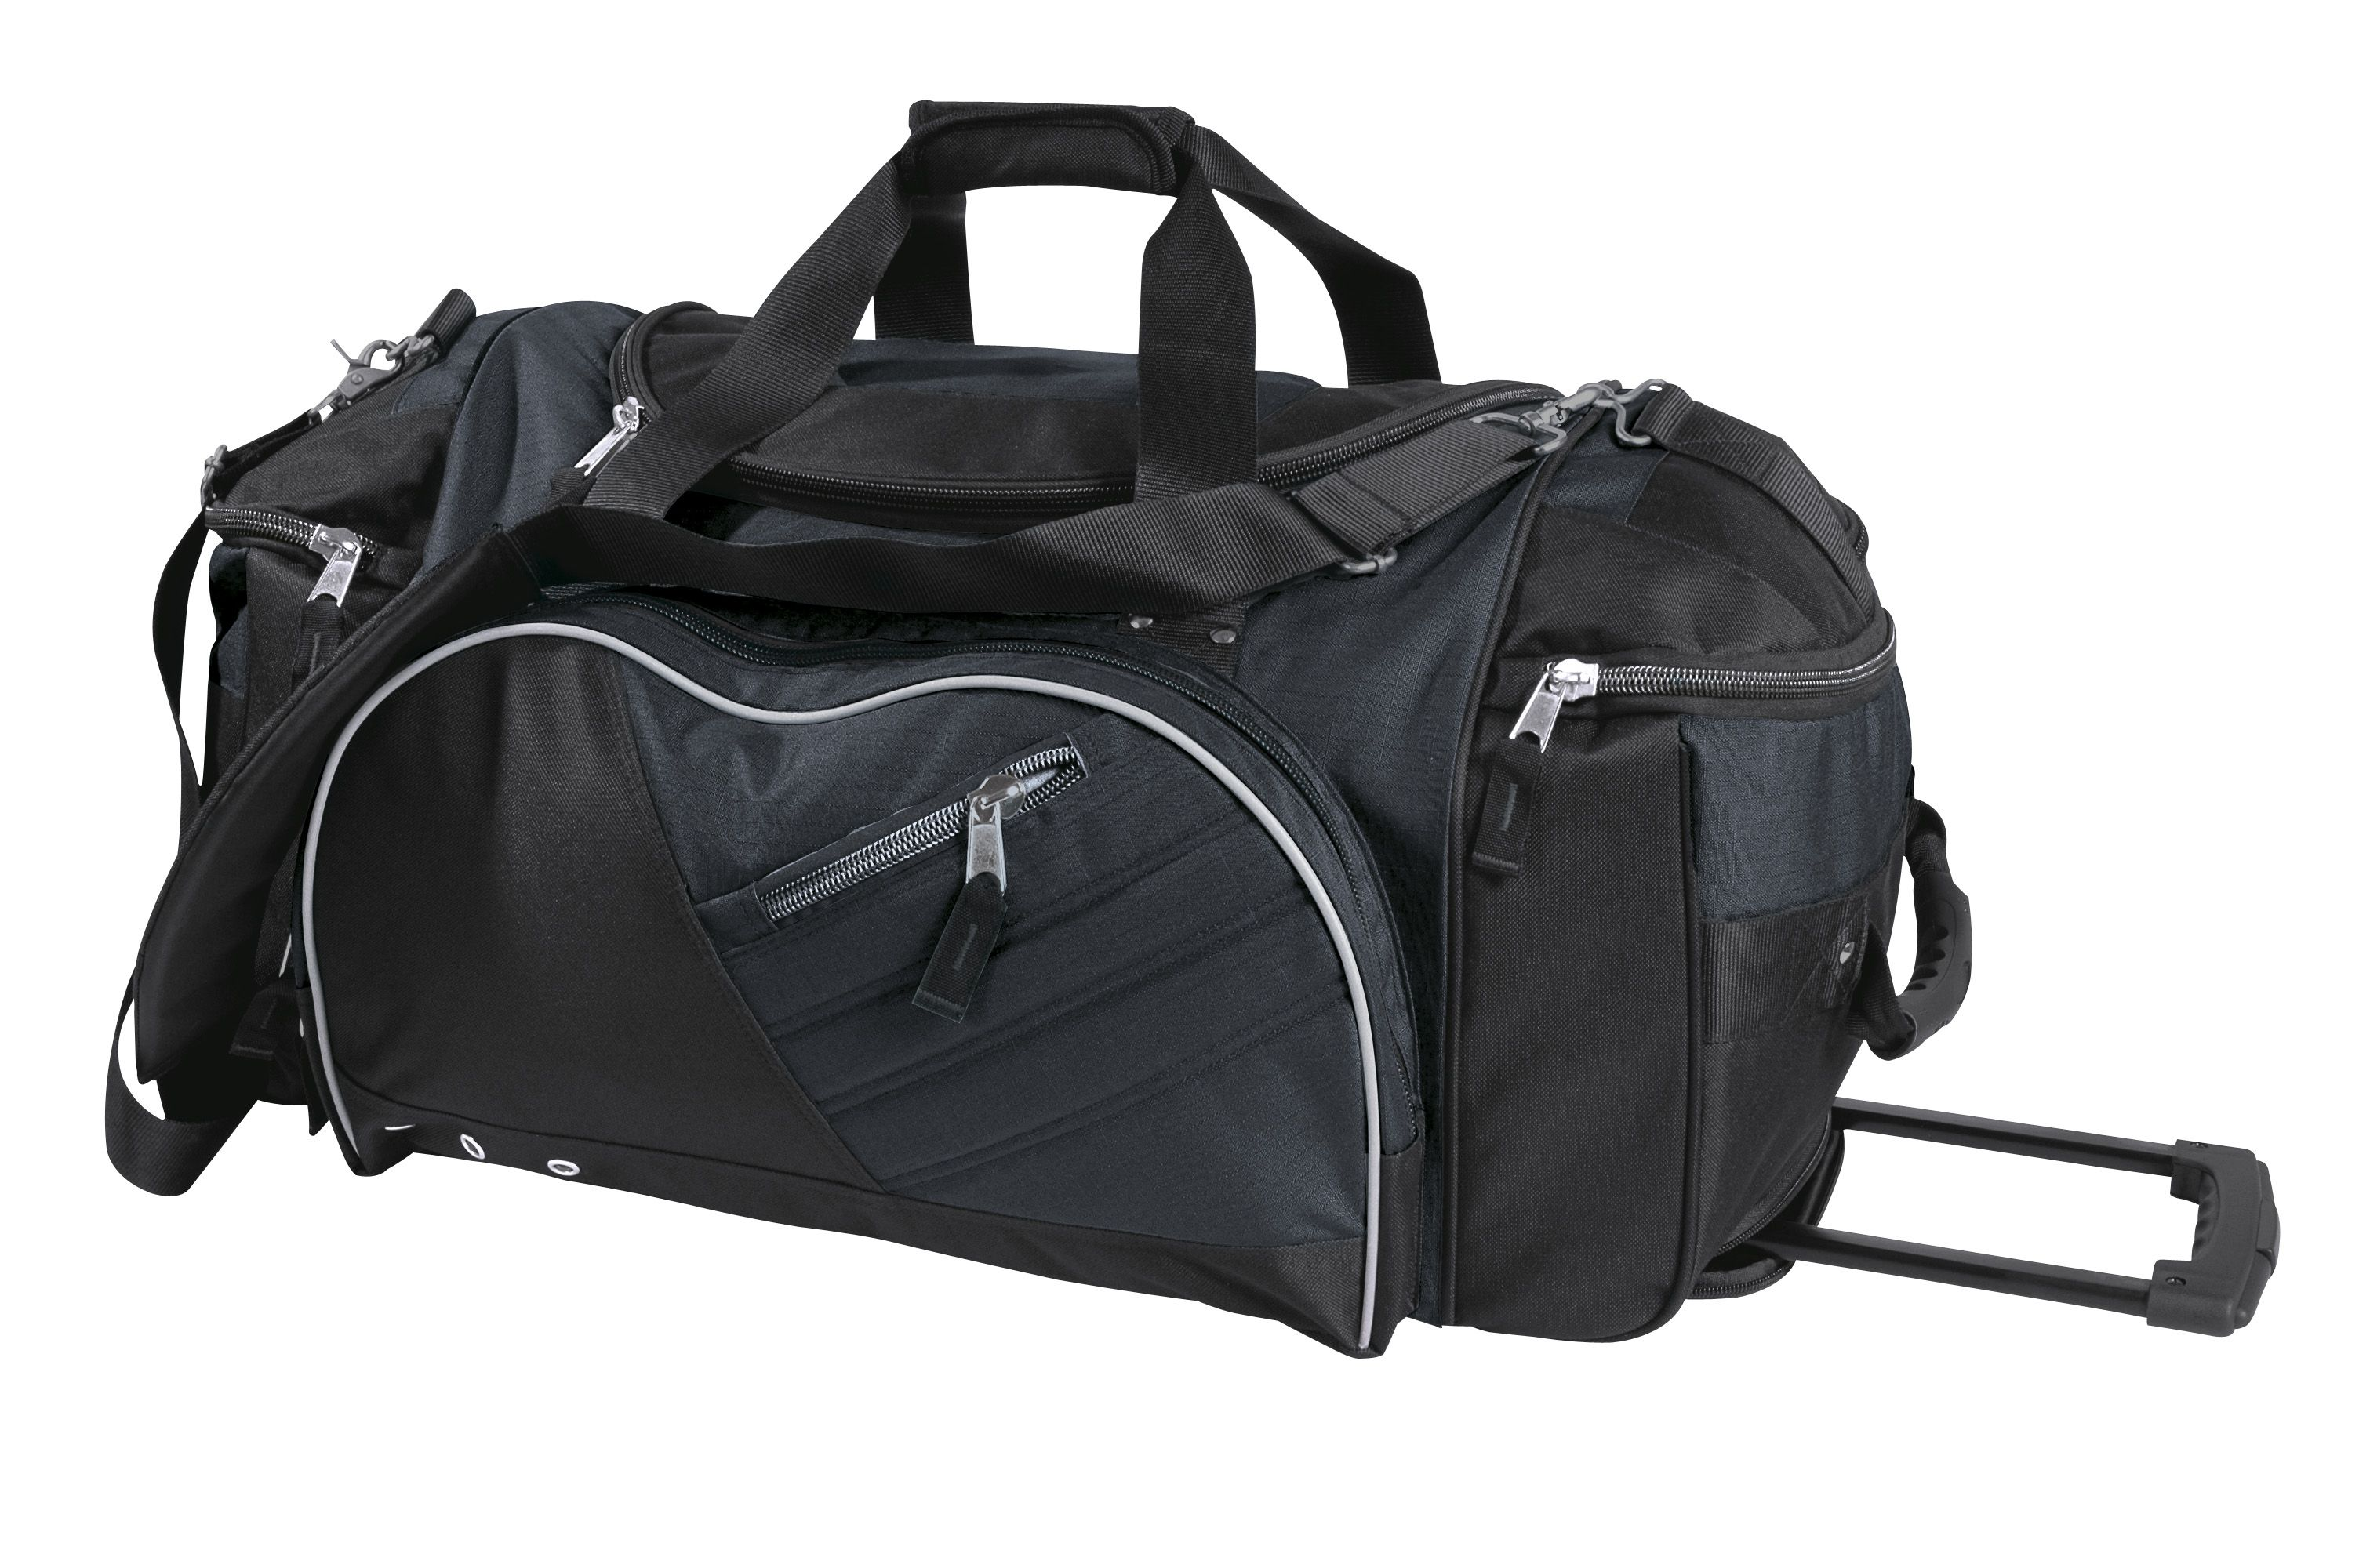 7fd23636a767 Travel luggage bags meet these requirements perfectly